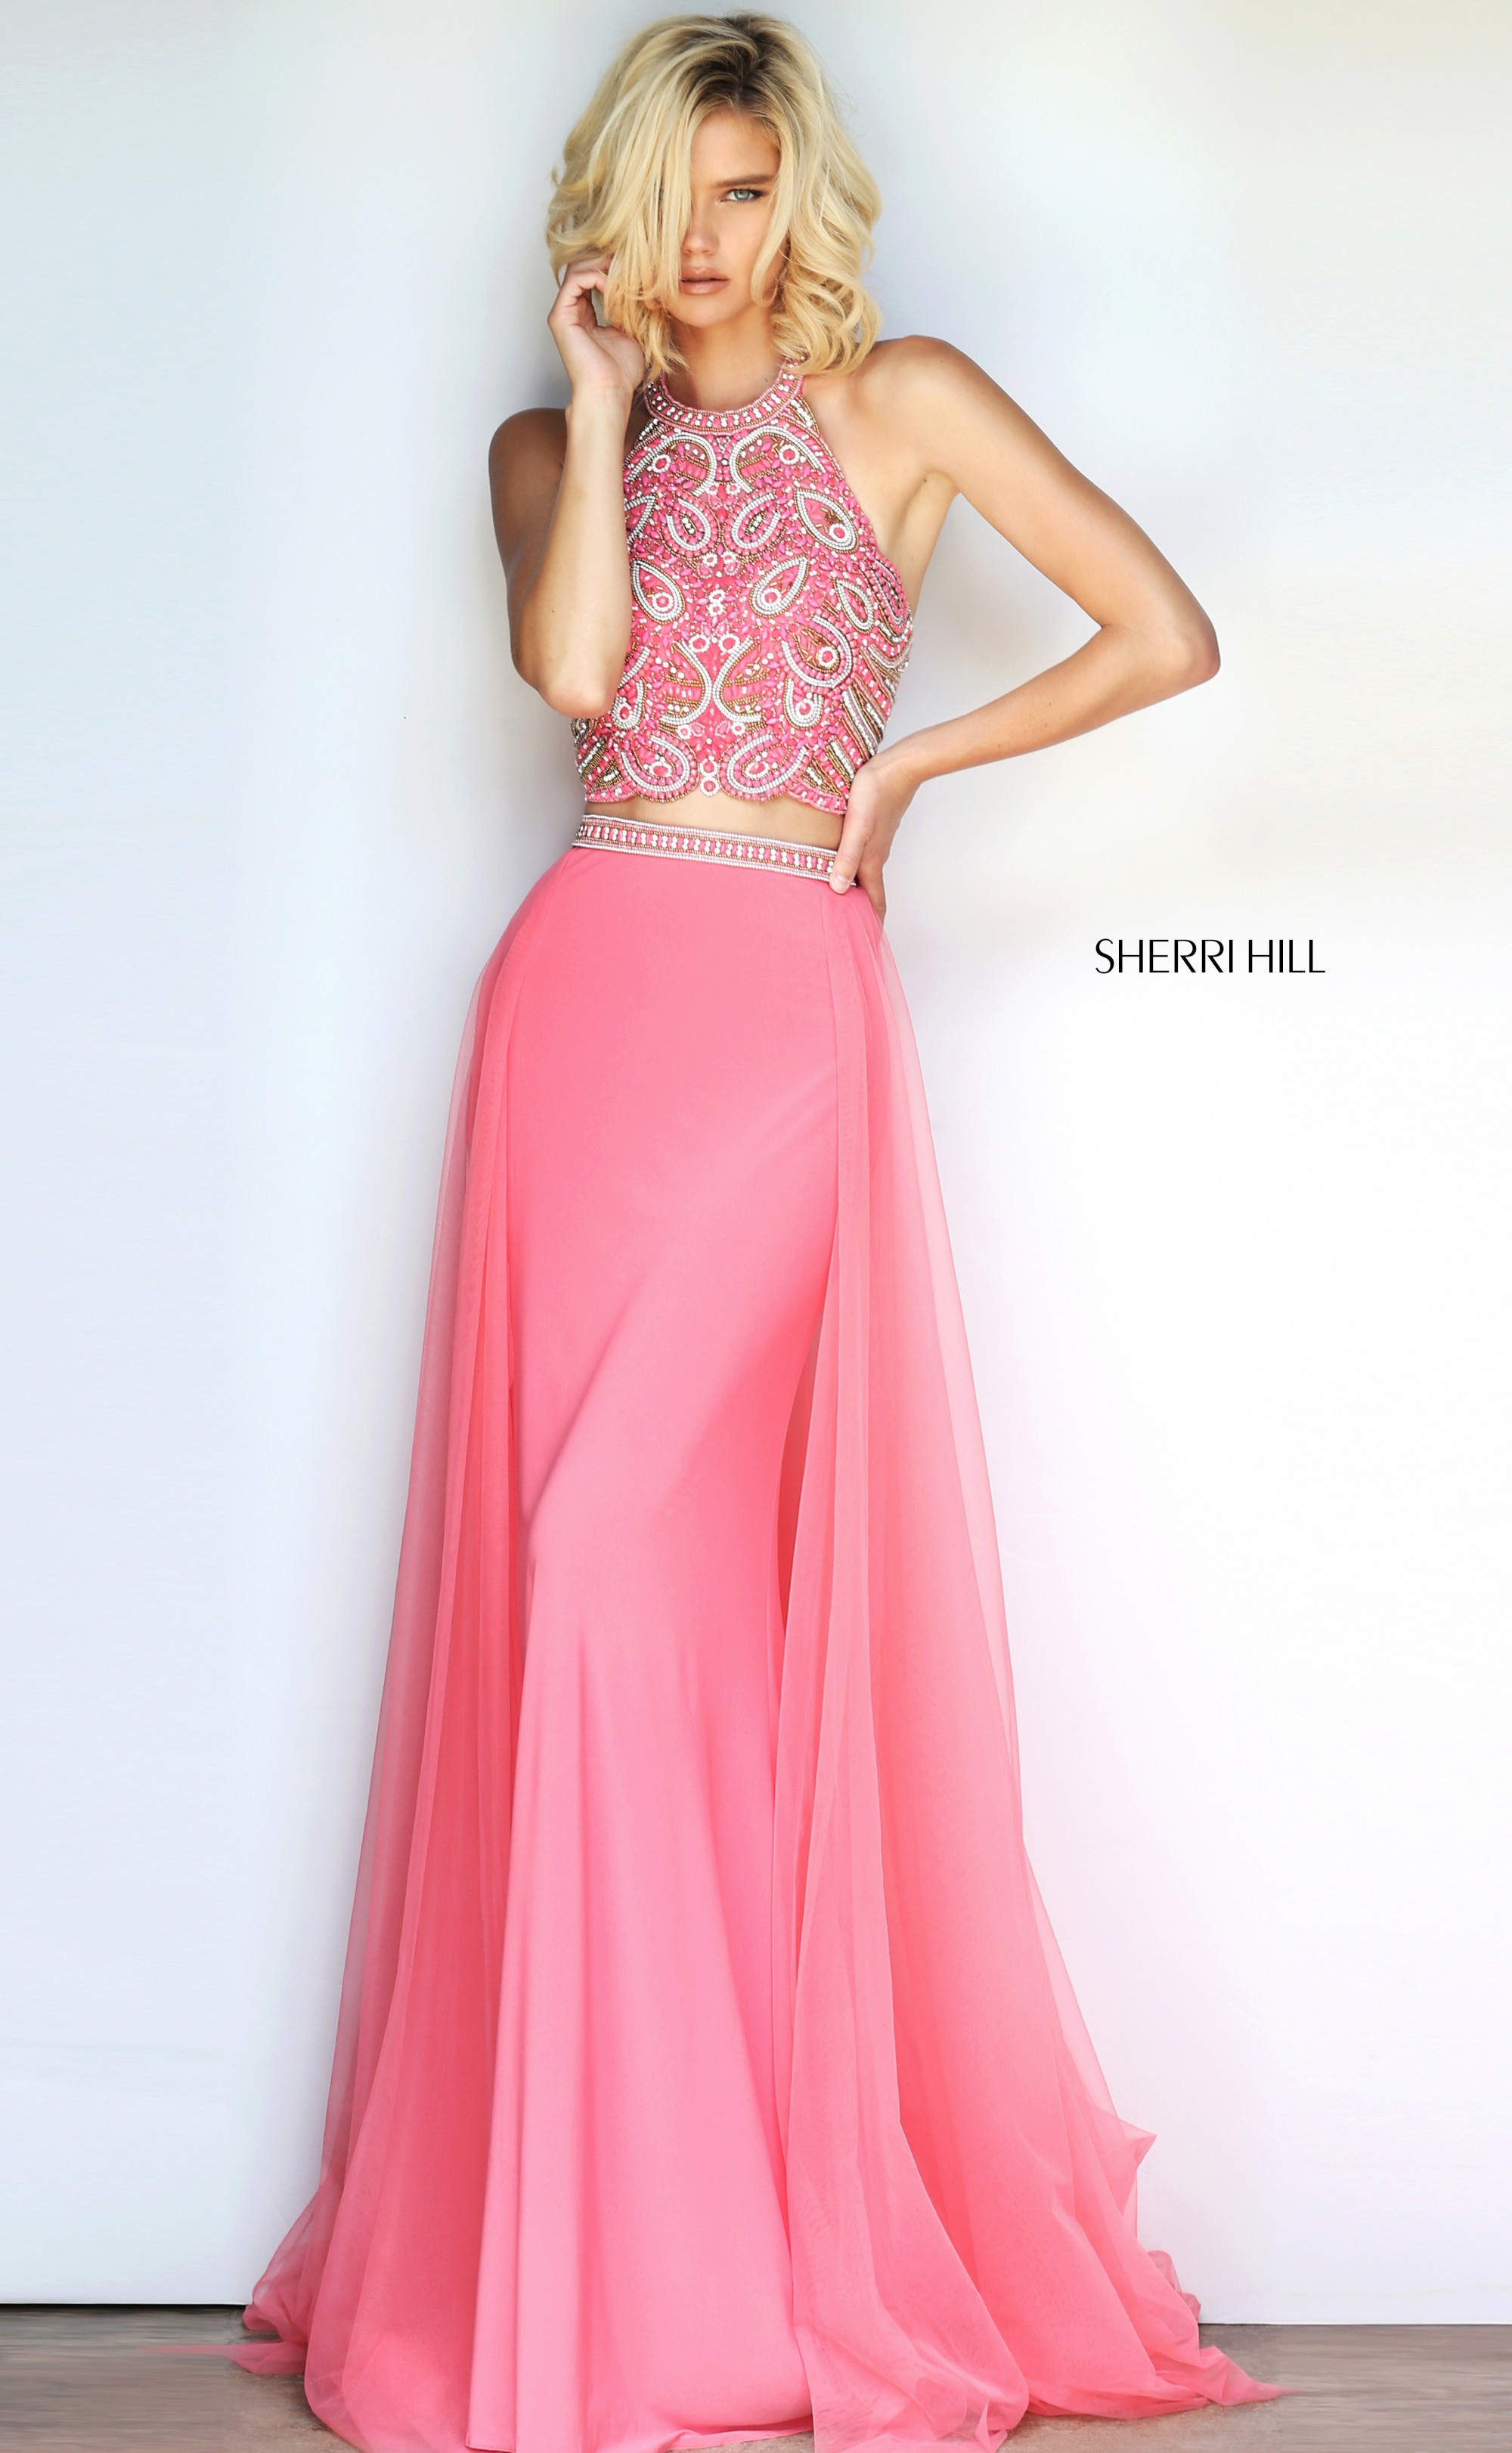 Sherri Hill 50981 Prom Dress | MadameBridal.com